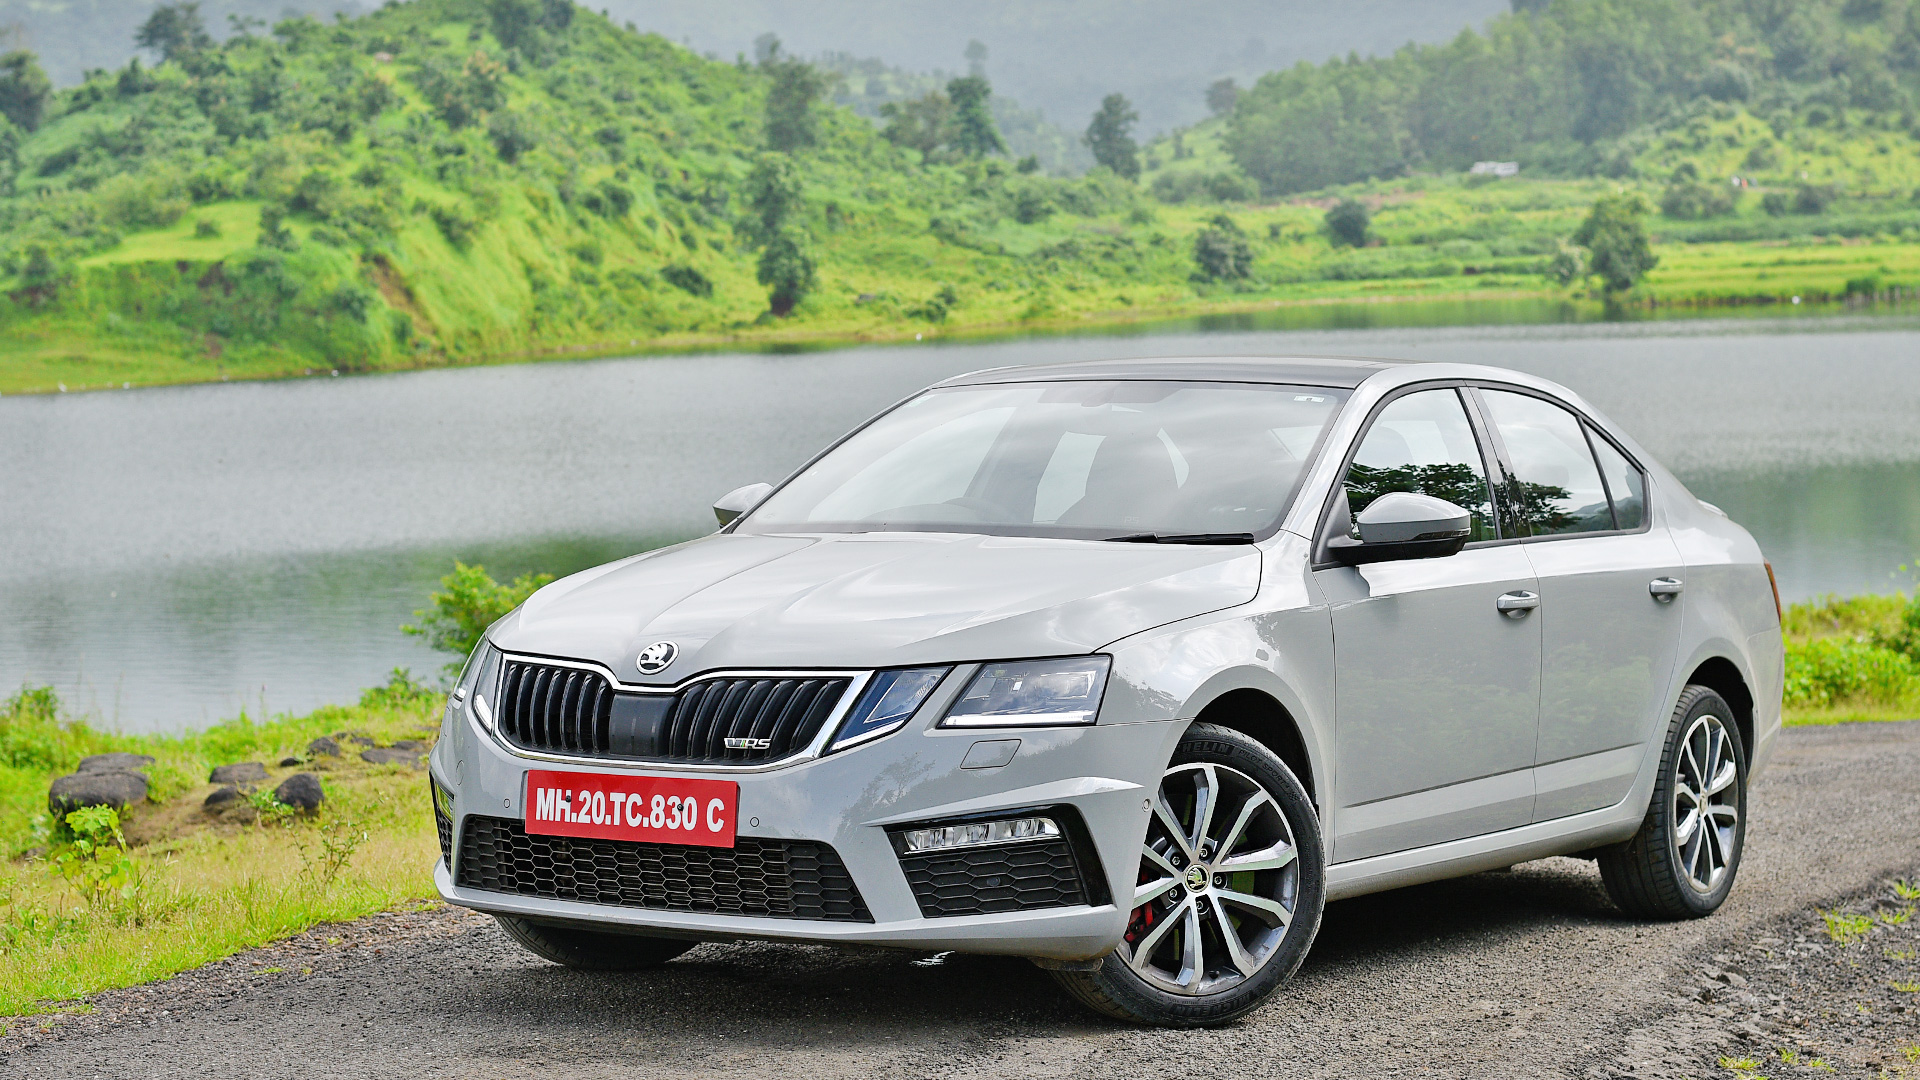 Skoda Octavia 2017 Price Mileage Reviews Specification Gallery